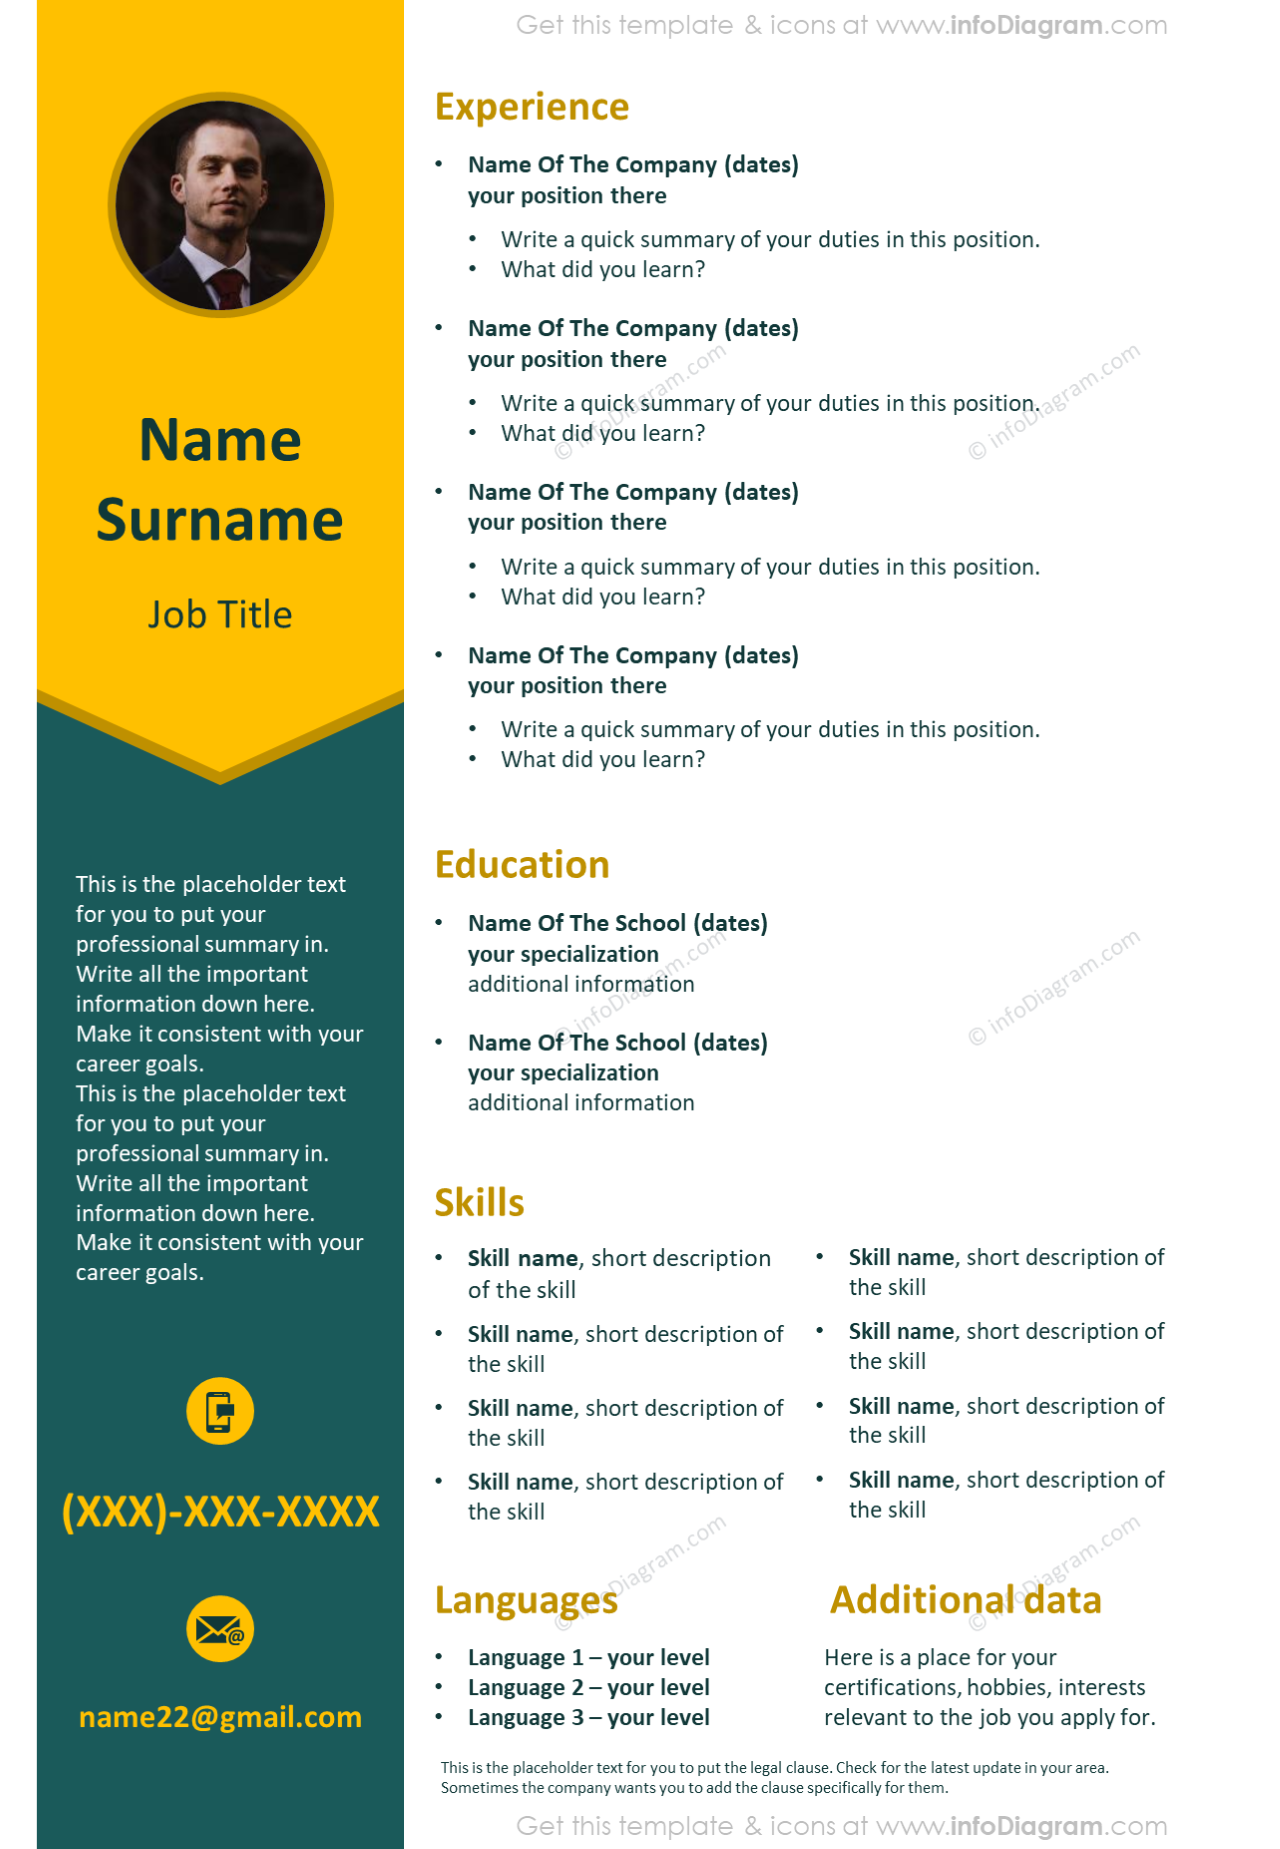 Pin On Cv Resume And Cover Letter Graphics